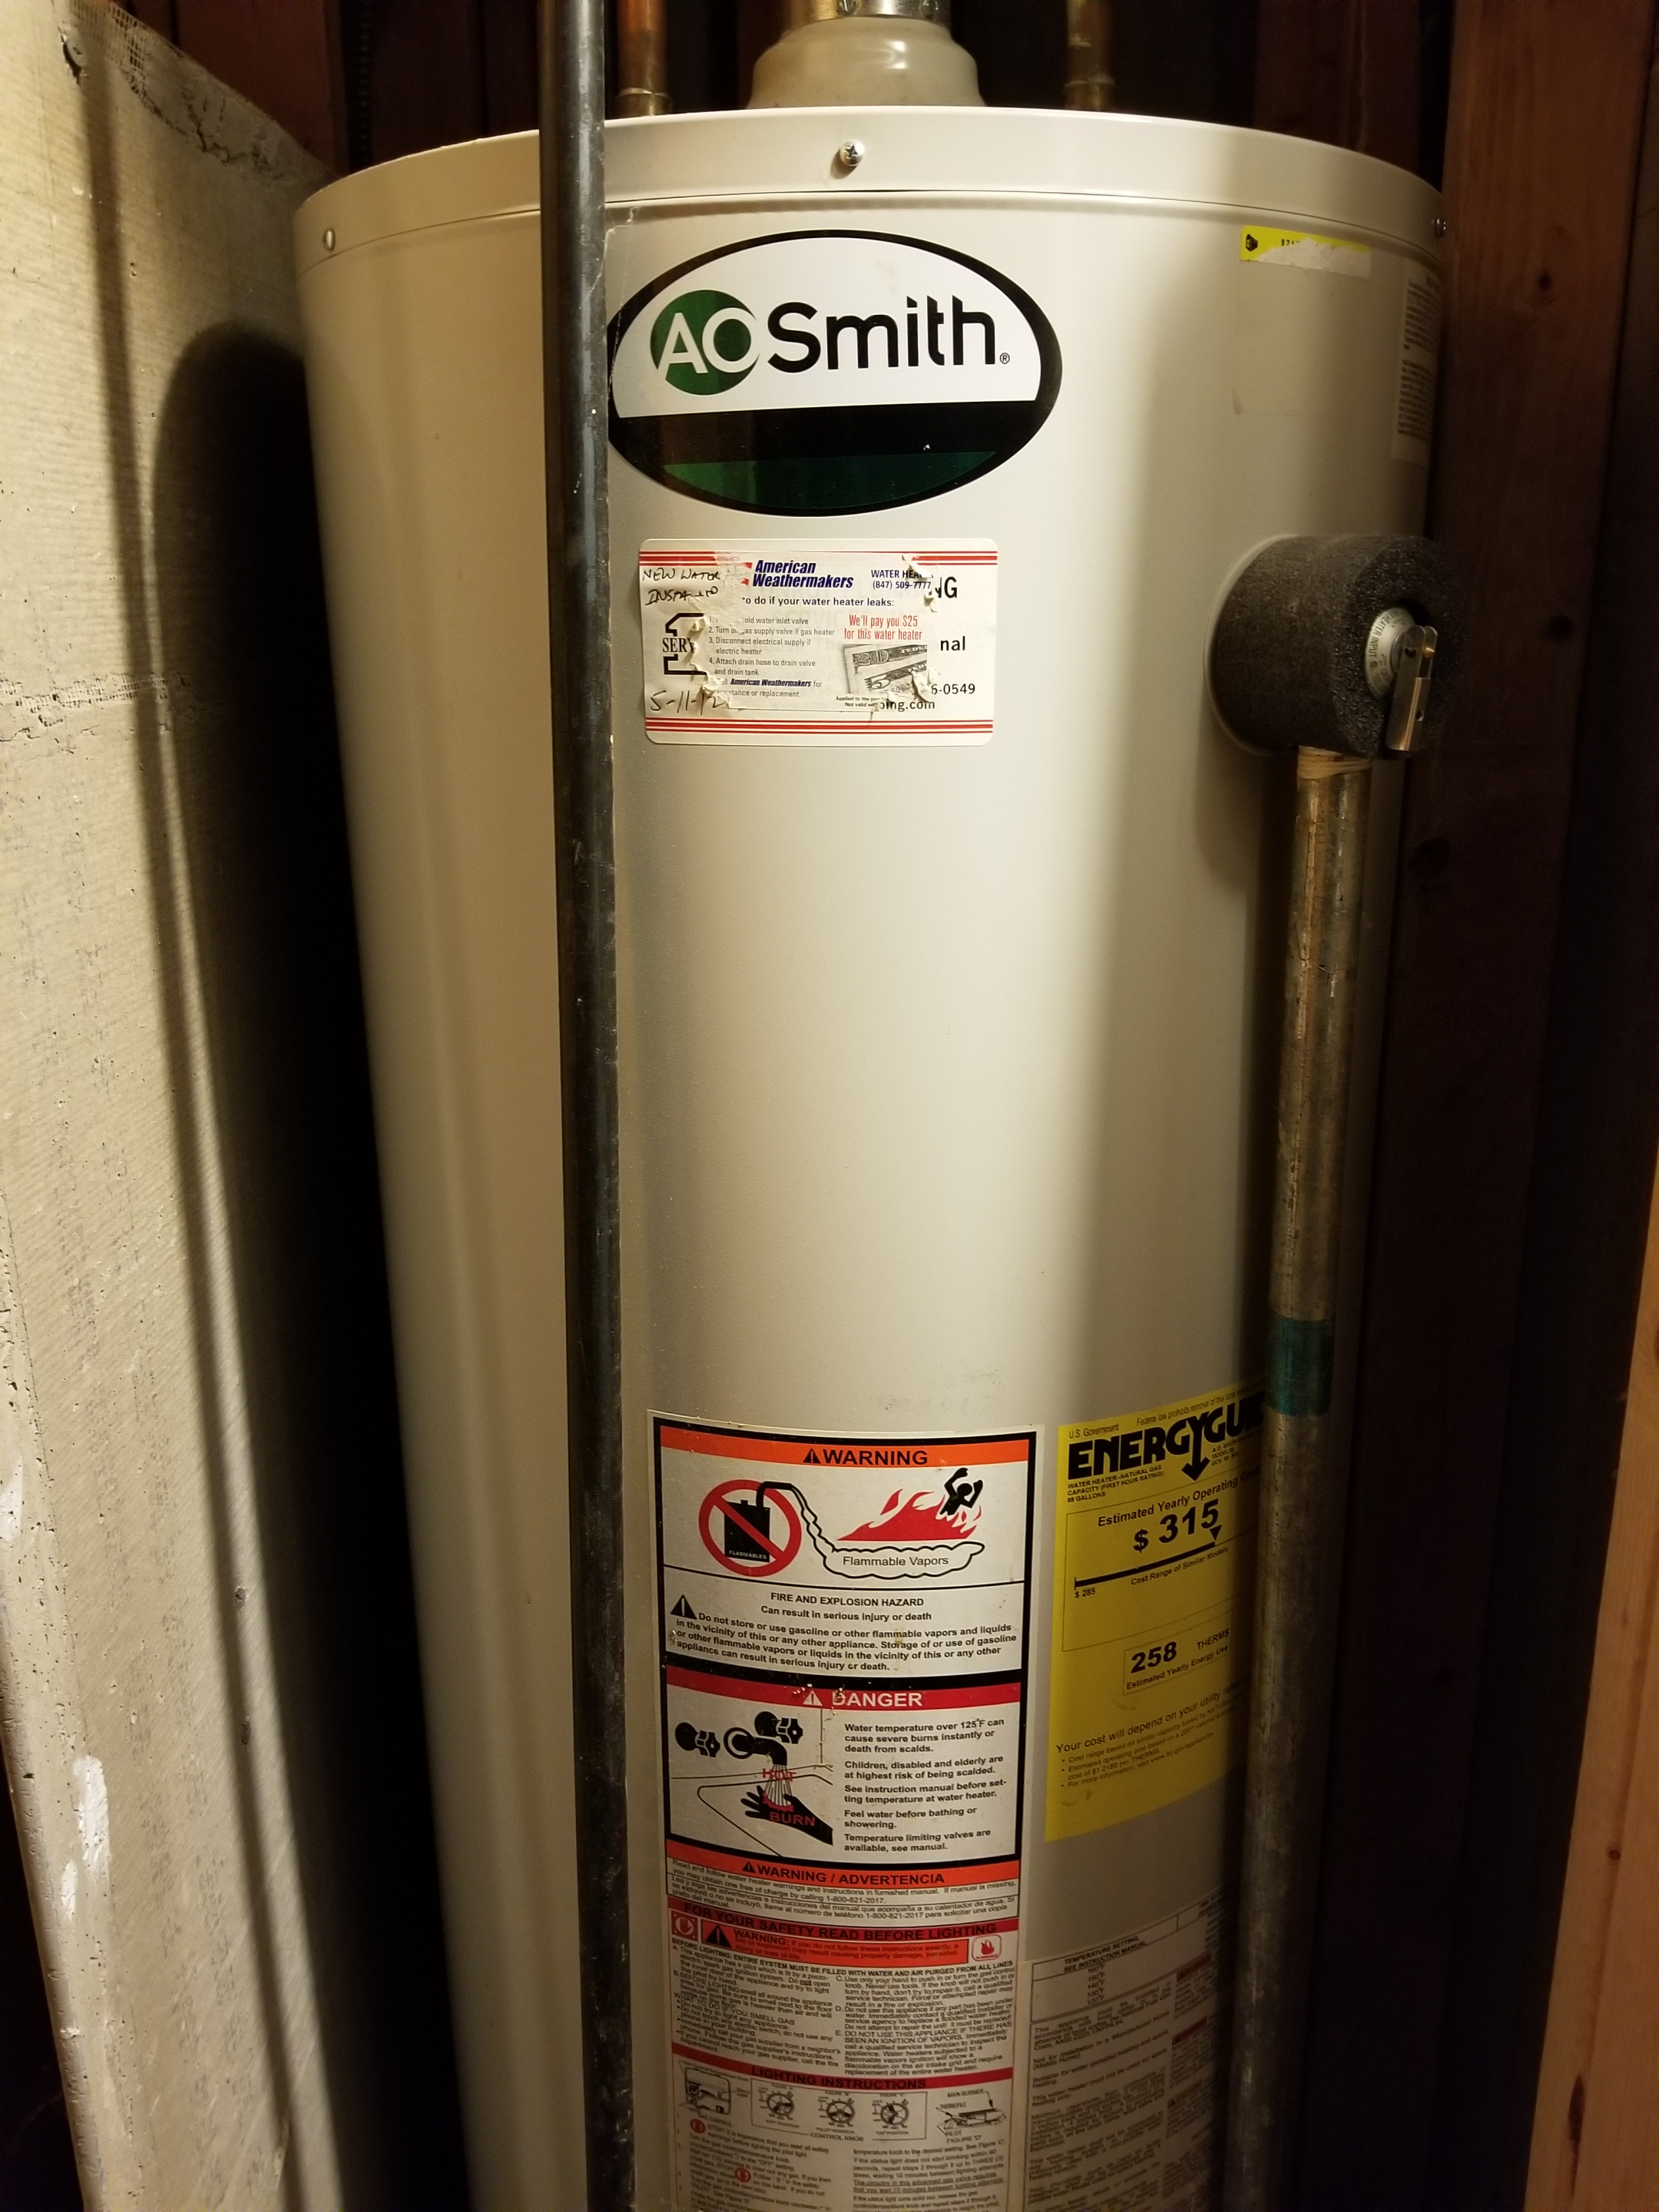 Repaired the A.O.Smith  water heater and made adjustments to improve the overall efficiency and life expectancy of the equipment